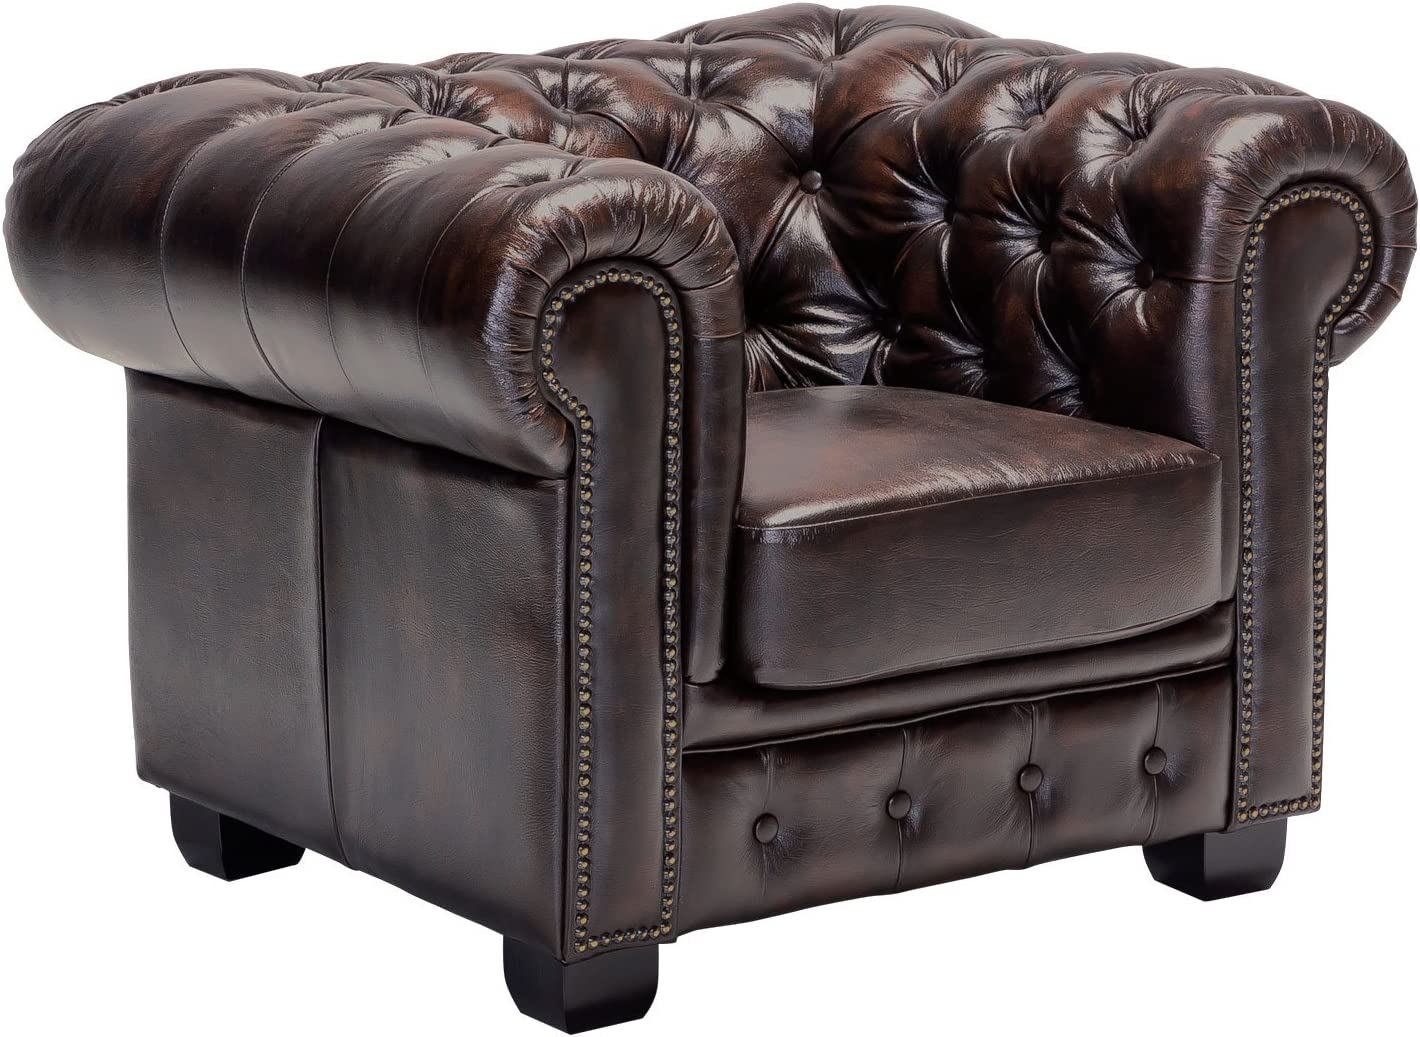 Woodkings® Chesterfield Armchair Antique Genuine Leather Office Chair  Upholstered Furniture Design Chair Spring Core Unique Men's Room English  Leather ...